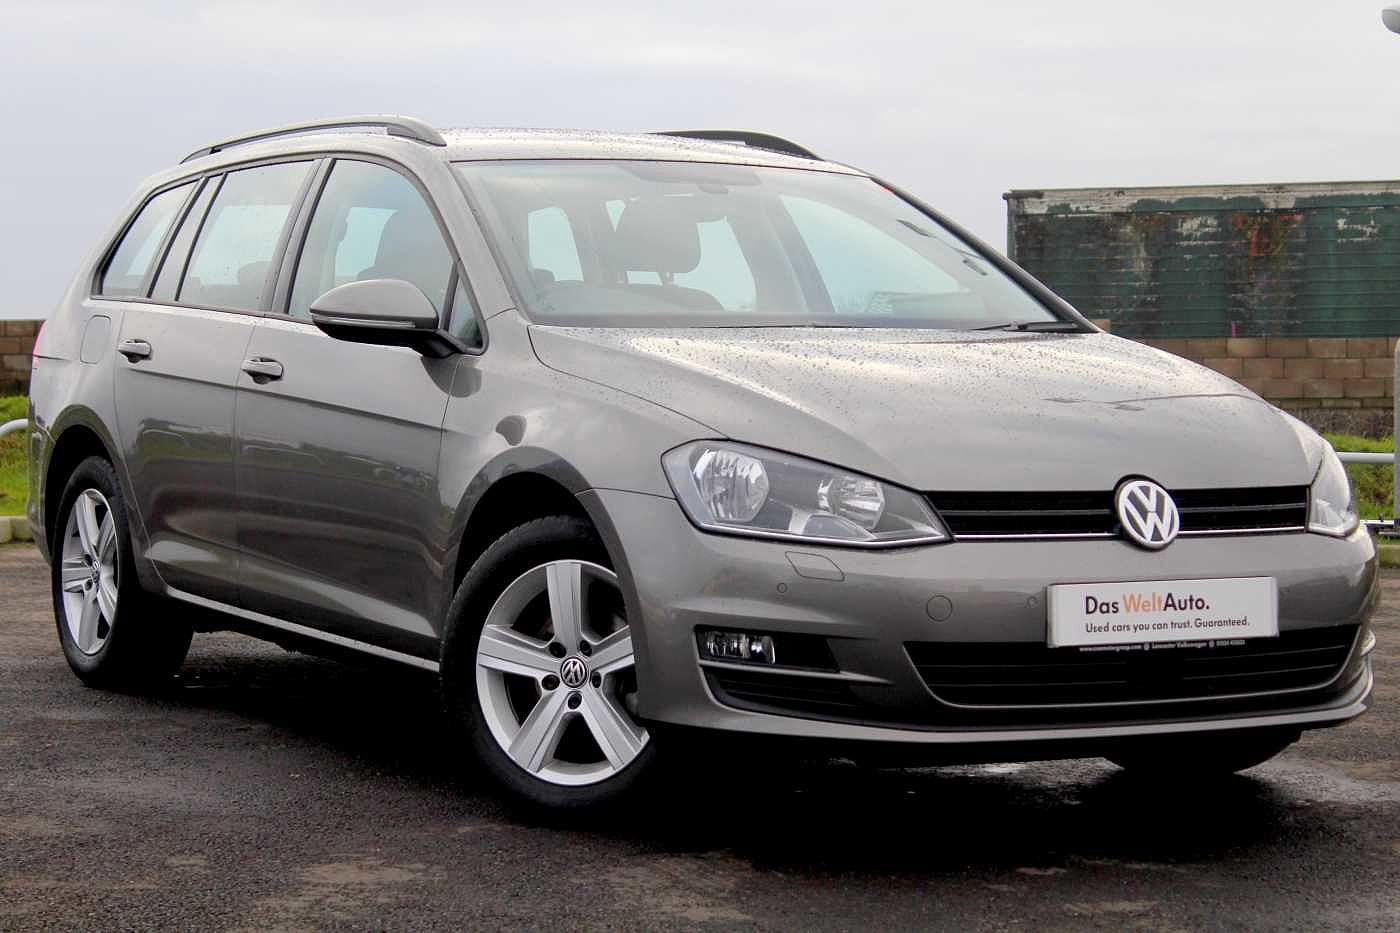 Volkswagen Golf MK7 Facelift 1.4 TSI Match Edition 125PS Estate